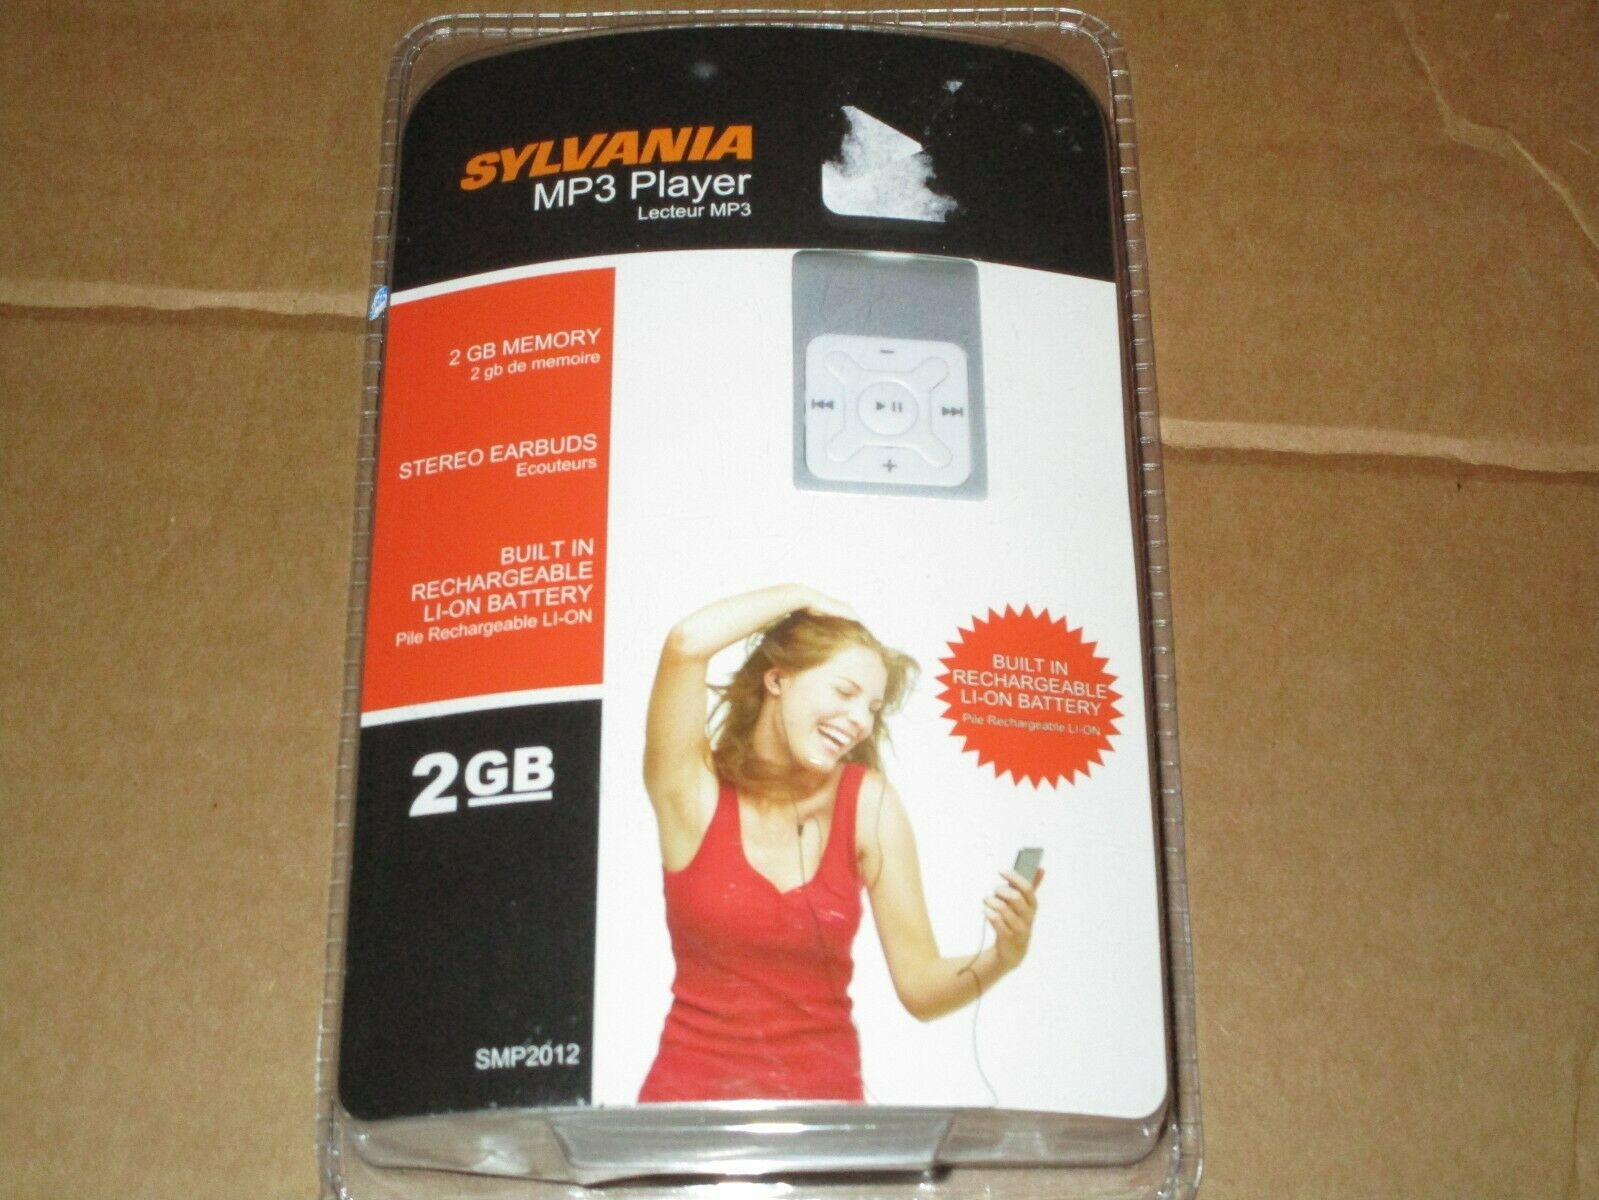 SYLVANIA MP3 PLAYER 2 GB MEMORY EARBUDS BRAND NEW SEALED MODEL SMP2012